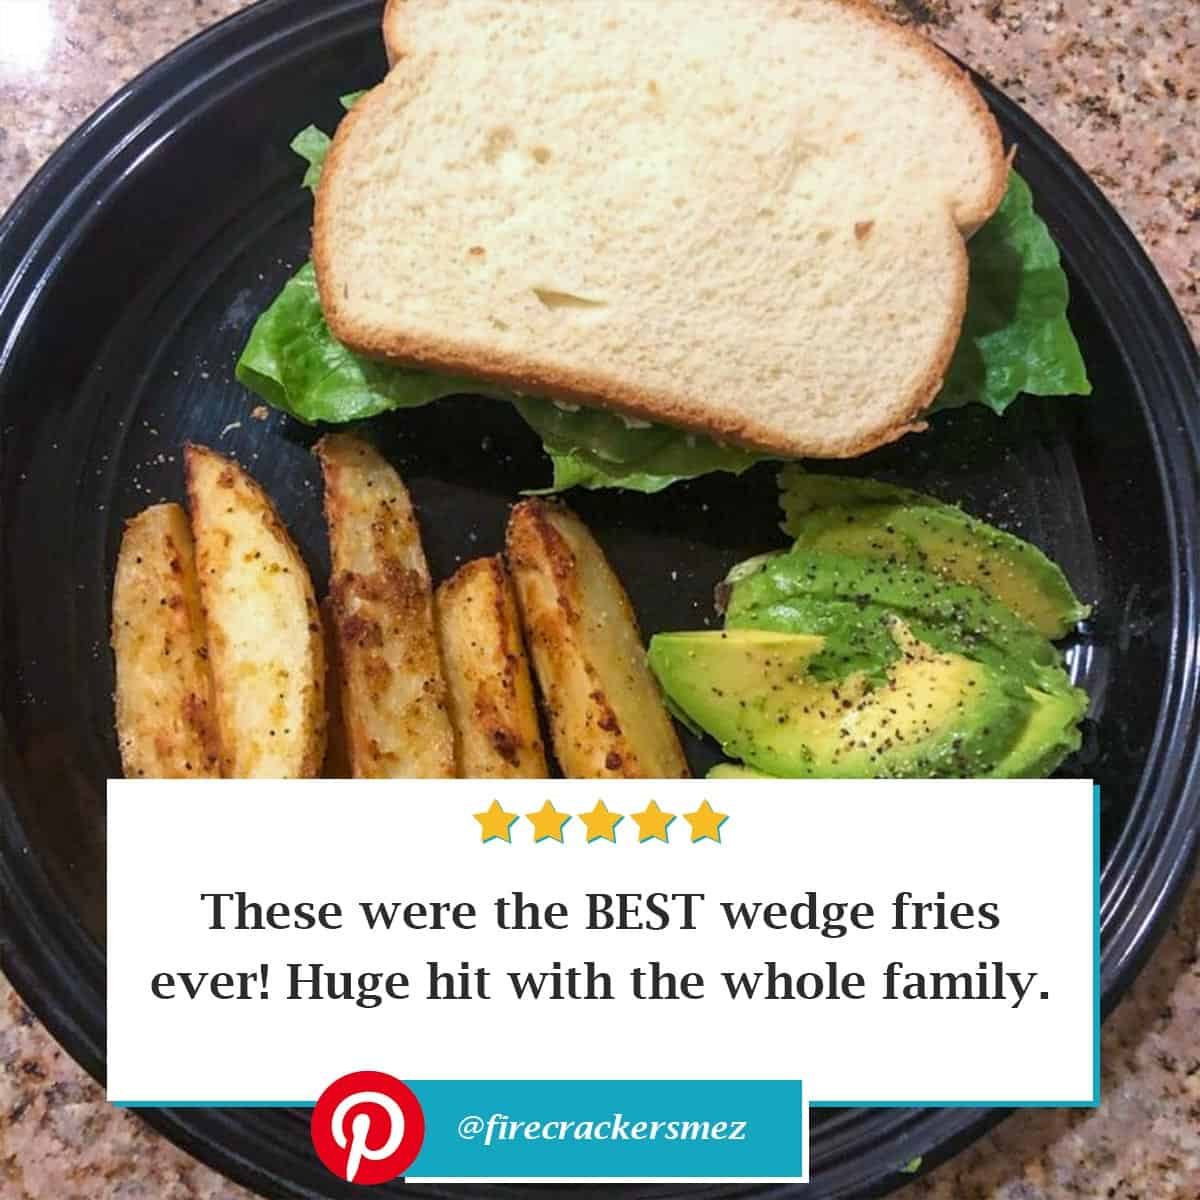 """Reviewer photo of the baked crispy potato wedges with a sandwich and sliced avocados on a black plate and the text overlay """"These were the BEST wedge fries ever! Huge hit with the whole family."""" with their Pinterest username: @firecrackersmez"""